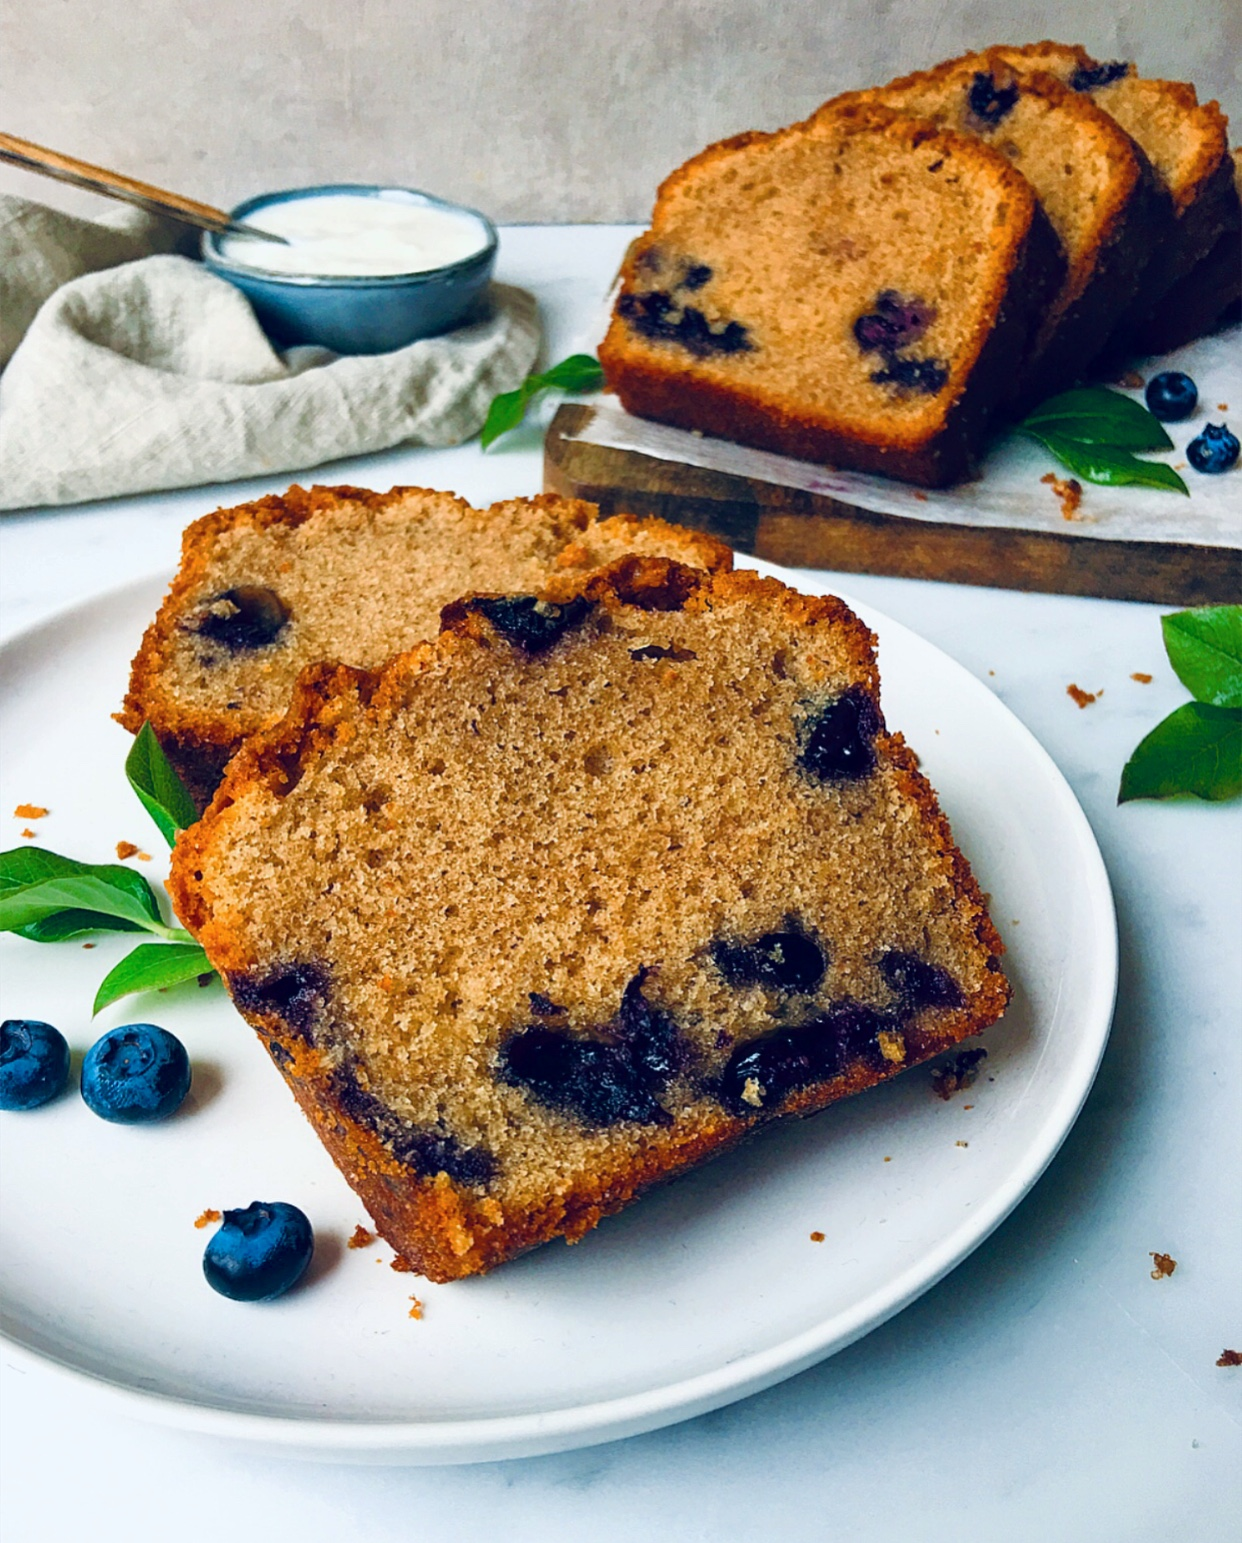 Easy, moist, soft Blueberry Cinnamon Loaf Cake.